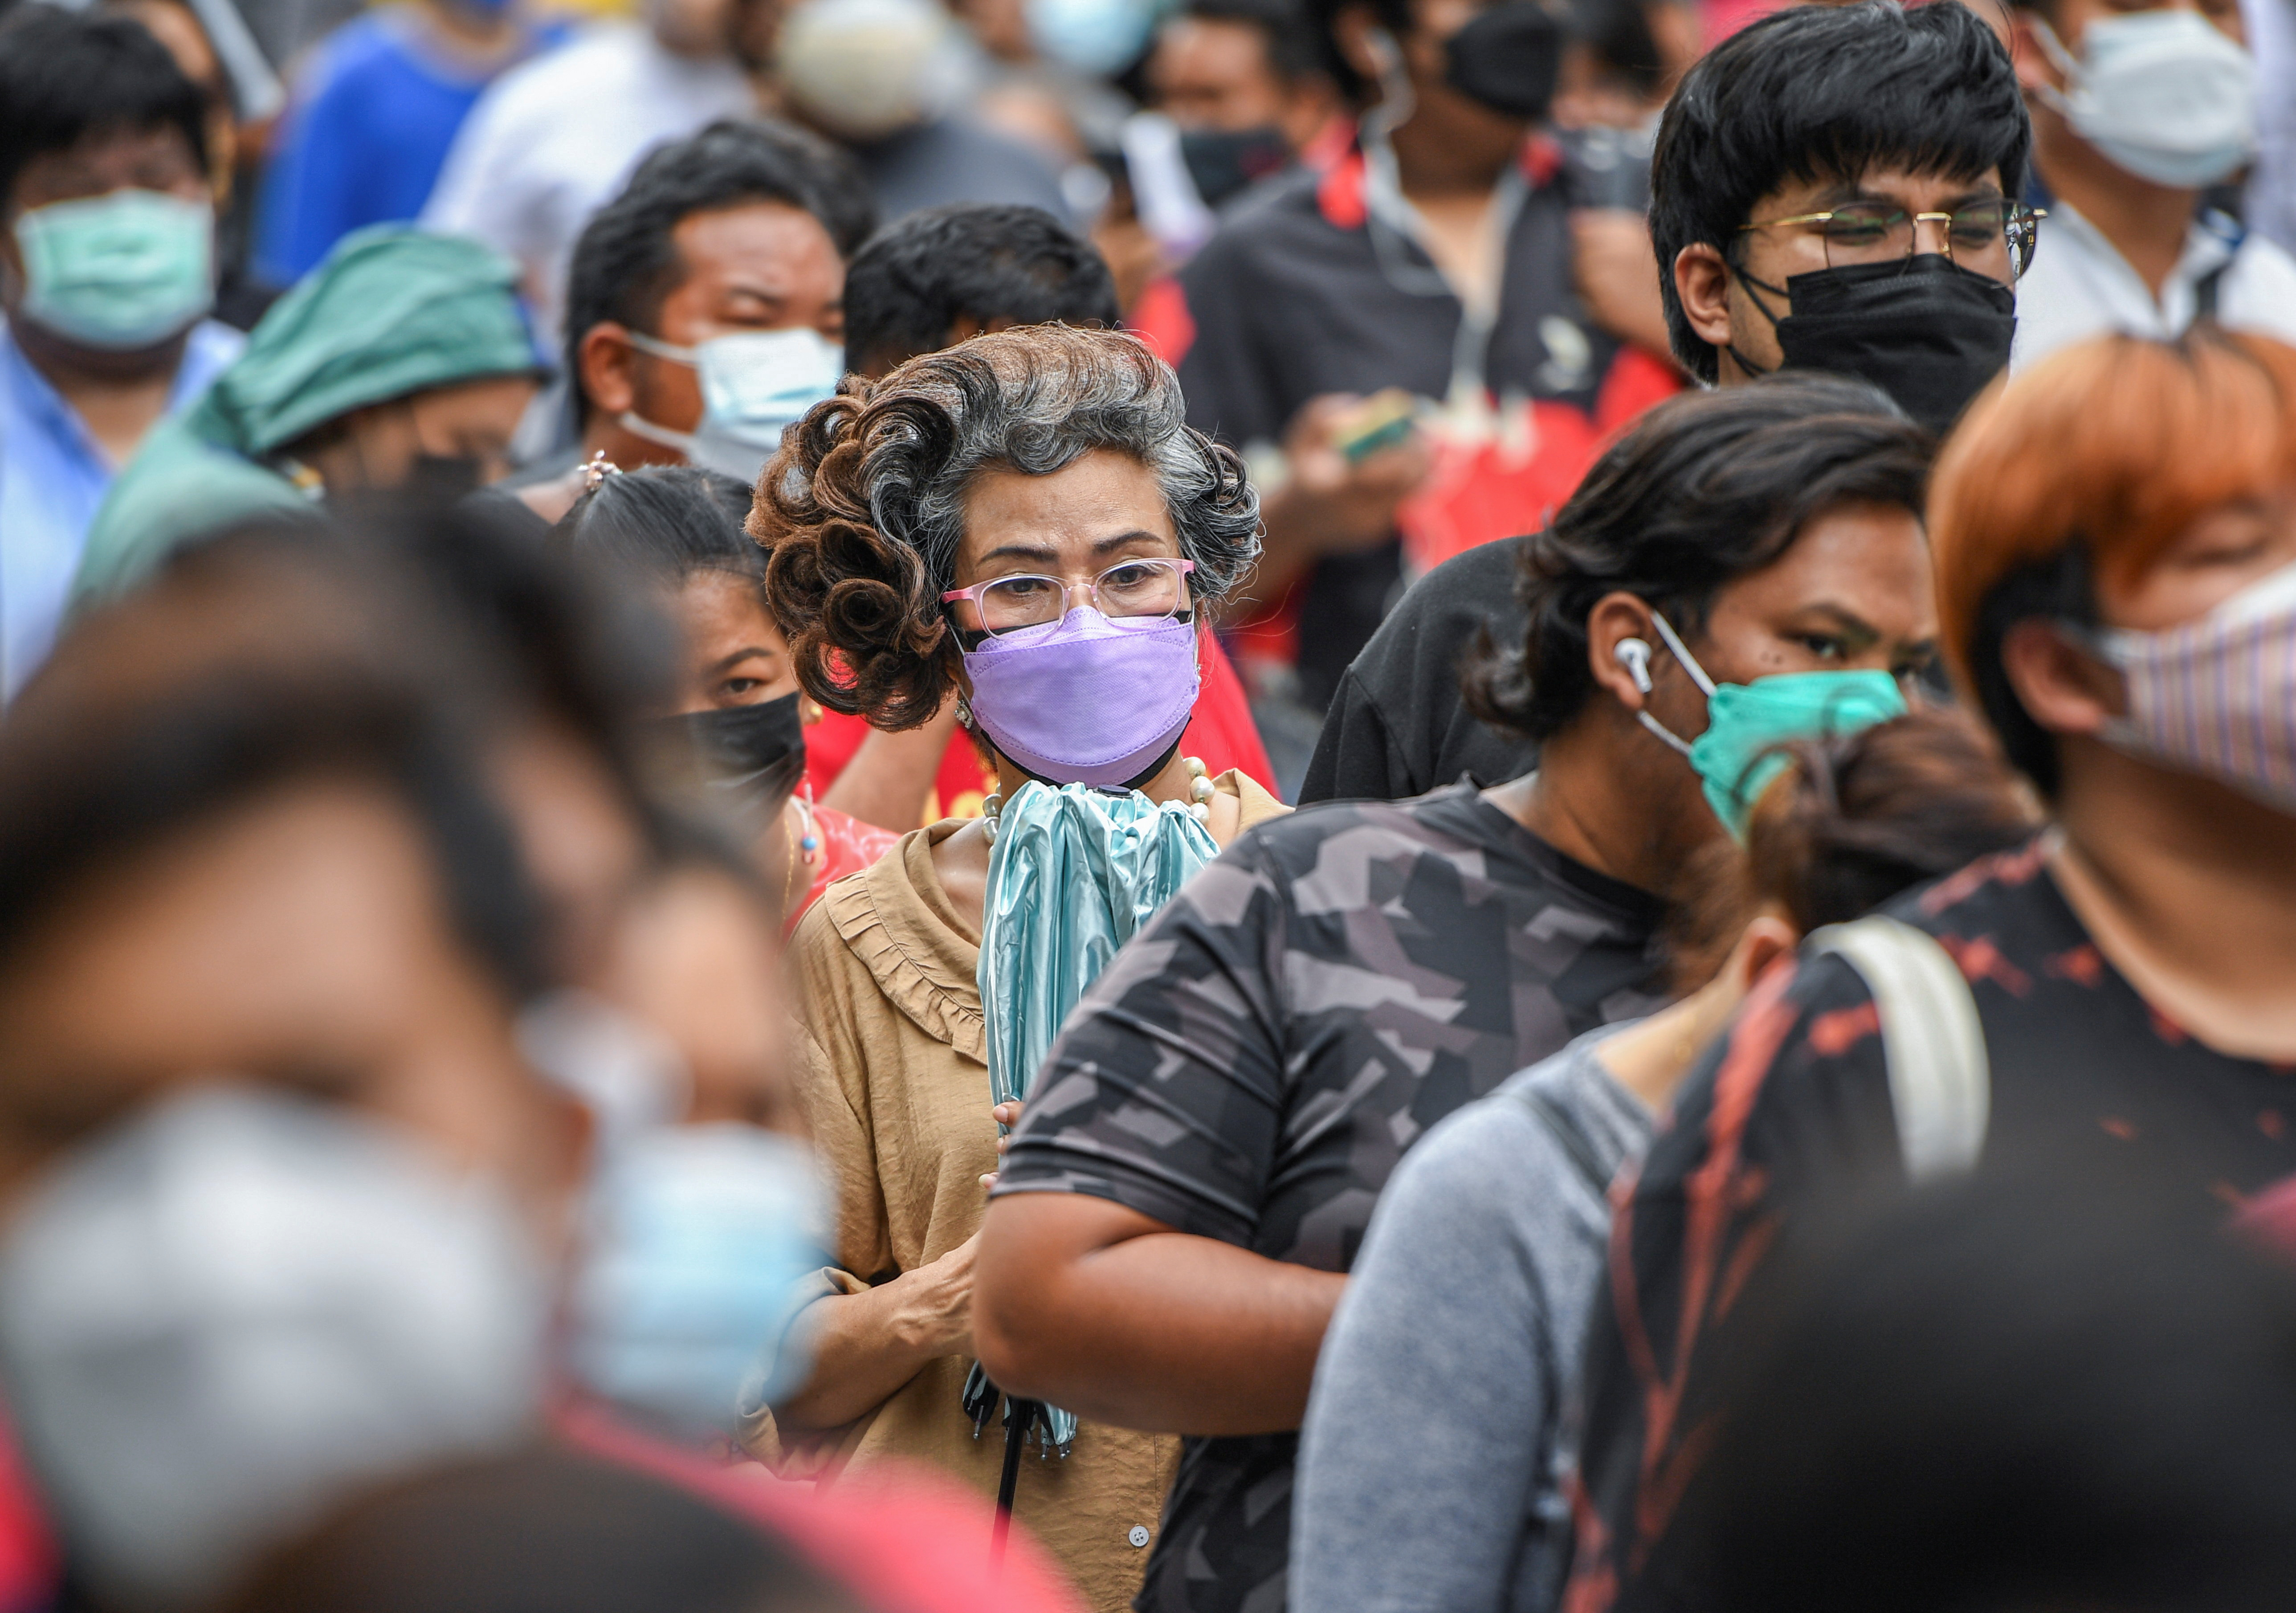 People wearing protective masks queue outside the Central Vaccination Center as Thailand opens walk-in first dose of the AstraZeneca coronavirus disease (COVID-19) vaccination scheme for elders, people with a minimum weight of 100 kilograms and pregnant women amid the COVID-19 outbreak in Bangkok, Thailand, July 22, 2021. REUTERS/Chalinee Thirasupa